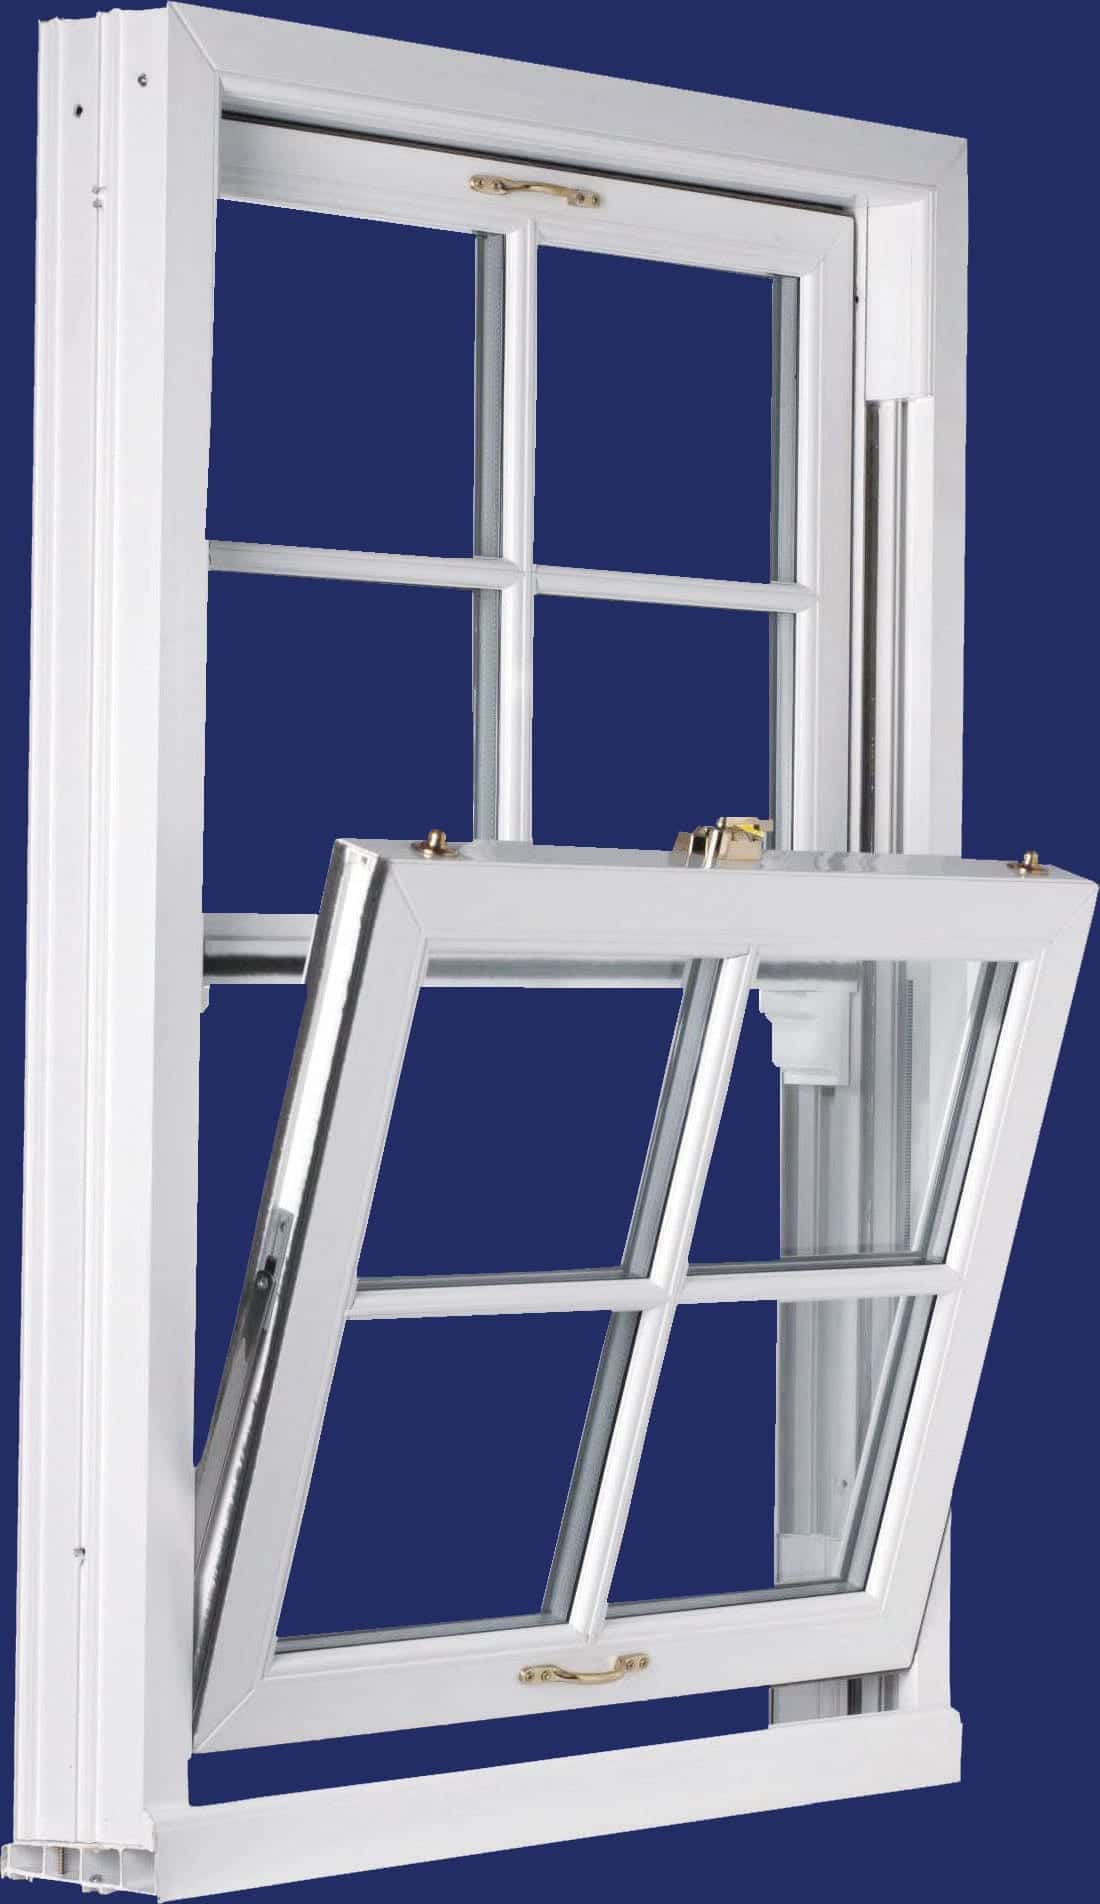 Ideal Windows And Conservatories Vertical Sliding Double Glazed Windows Edinburgh